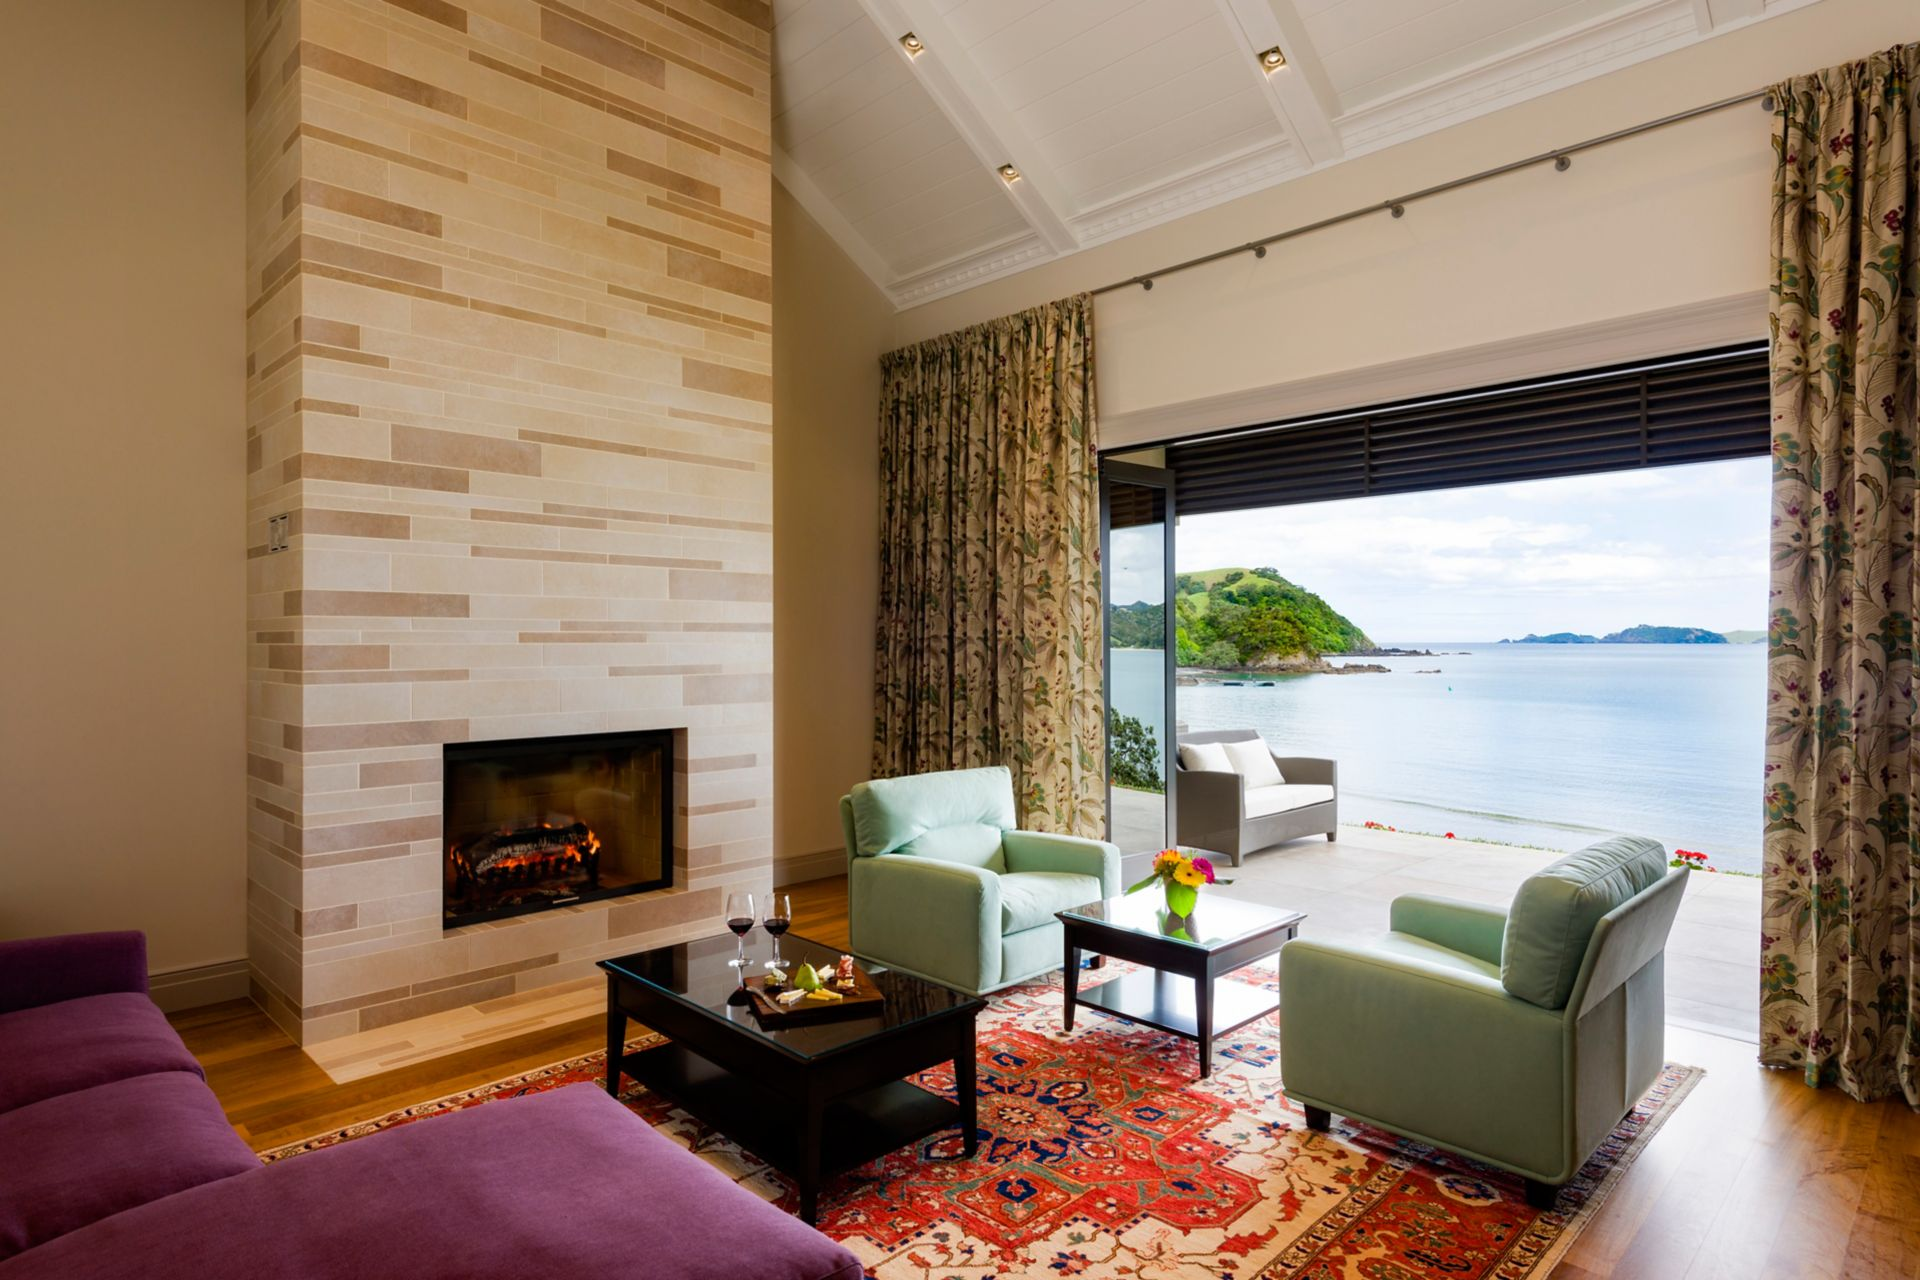 Room with chimney in luxury lodge in New Zealand